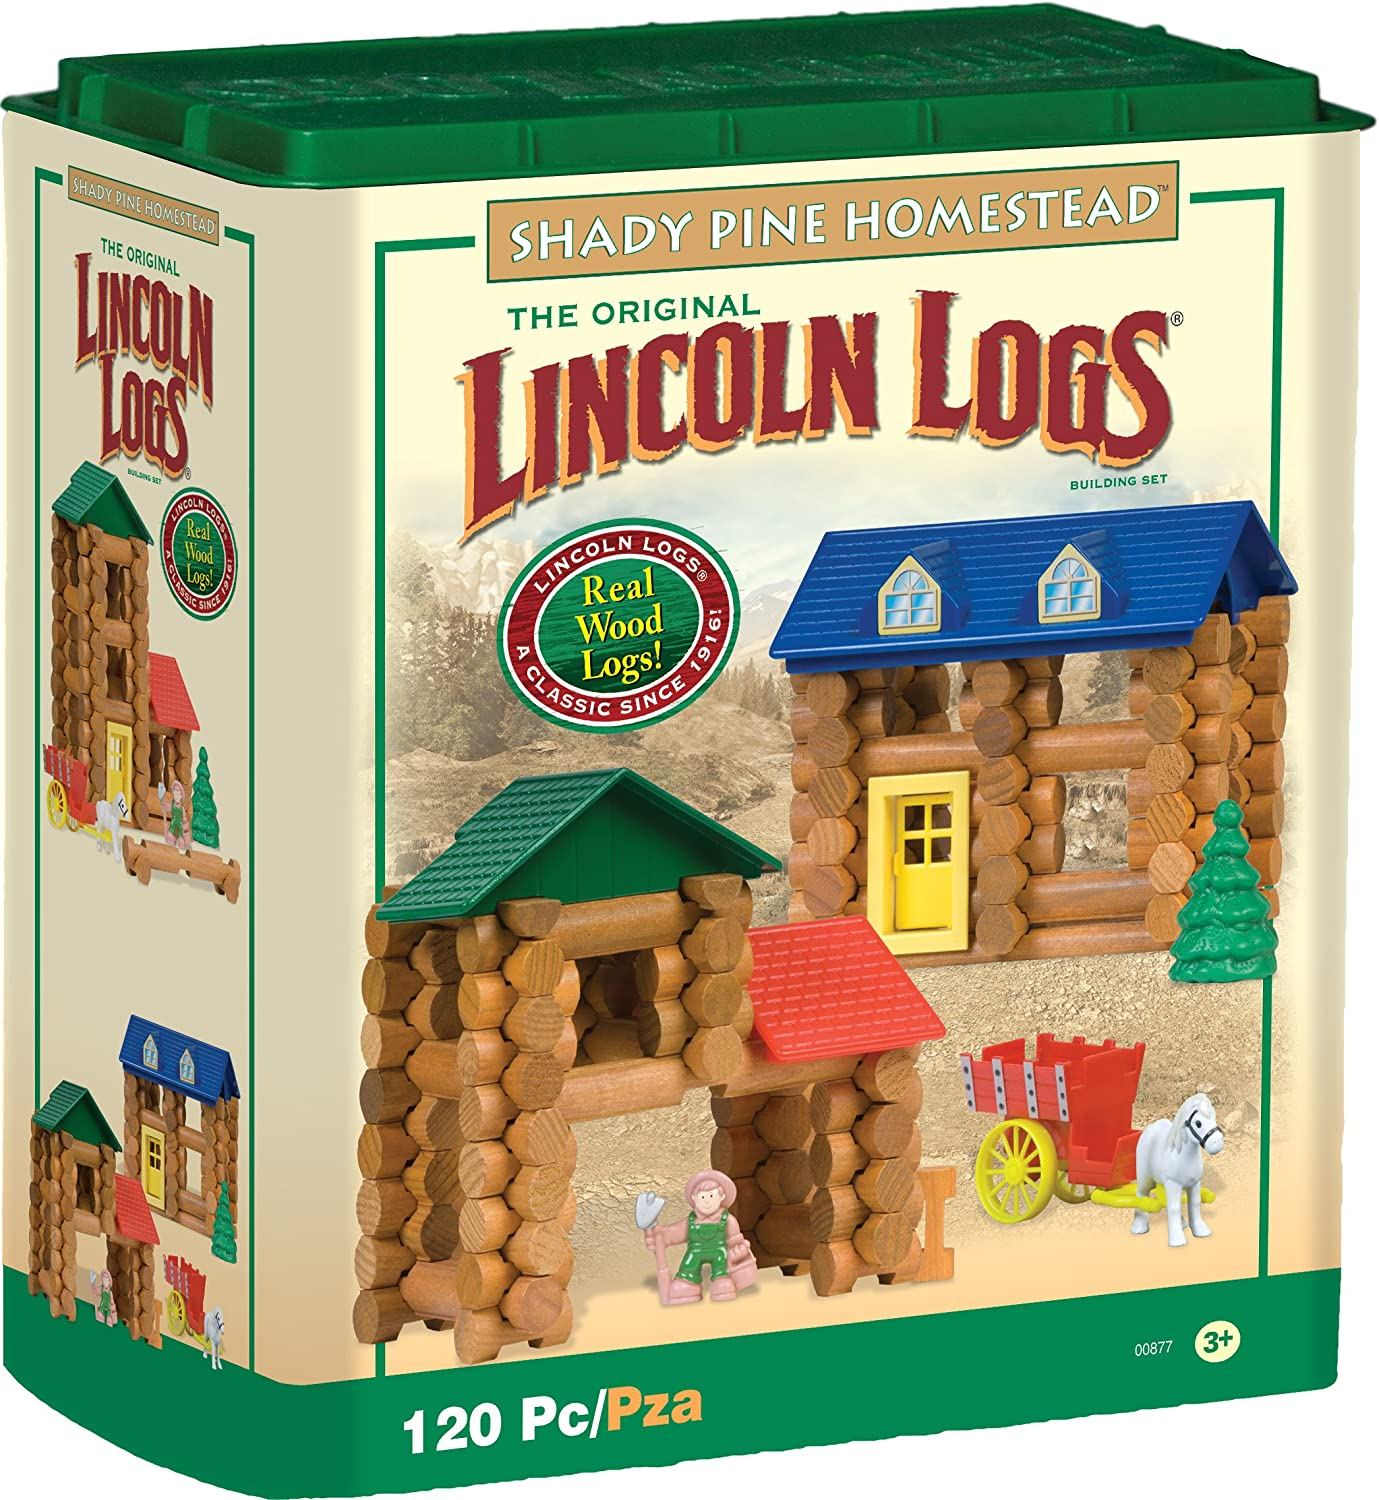 Lincoln Logs Shady Pine Homestead 120 Pc 00877